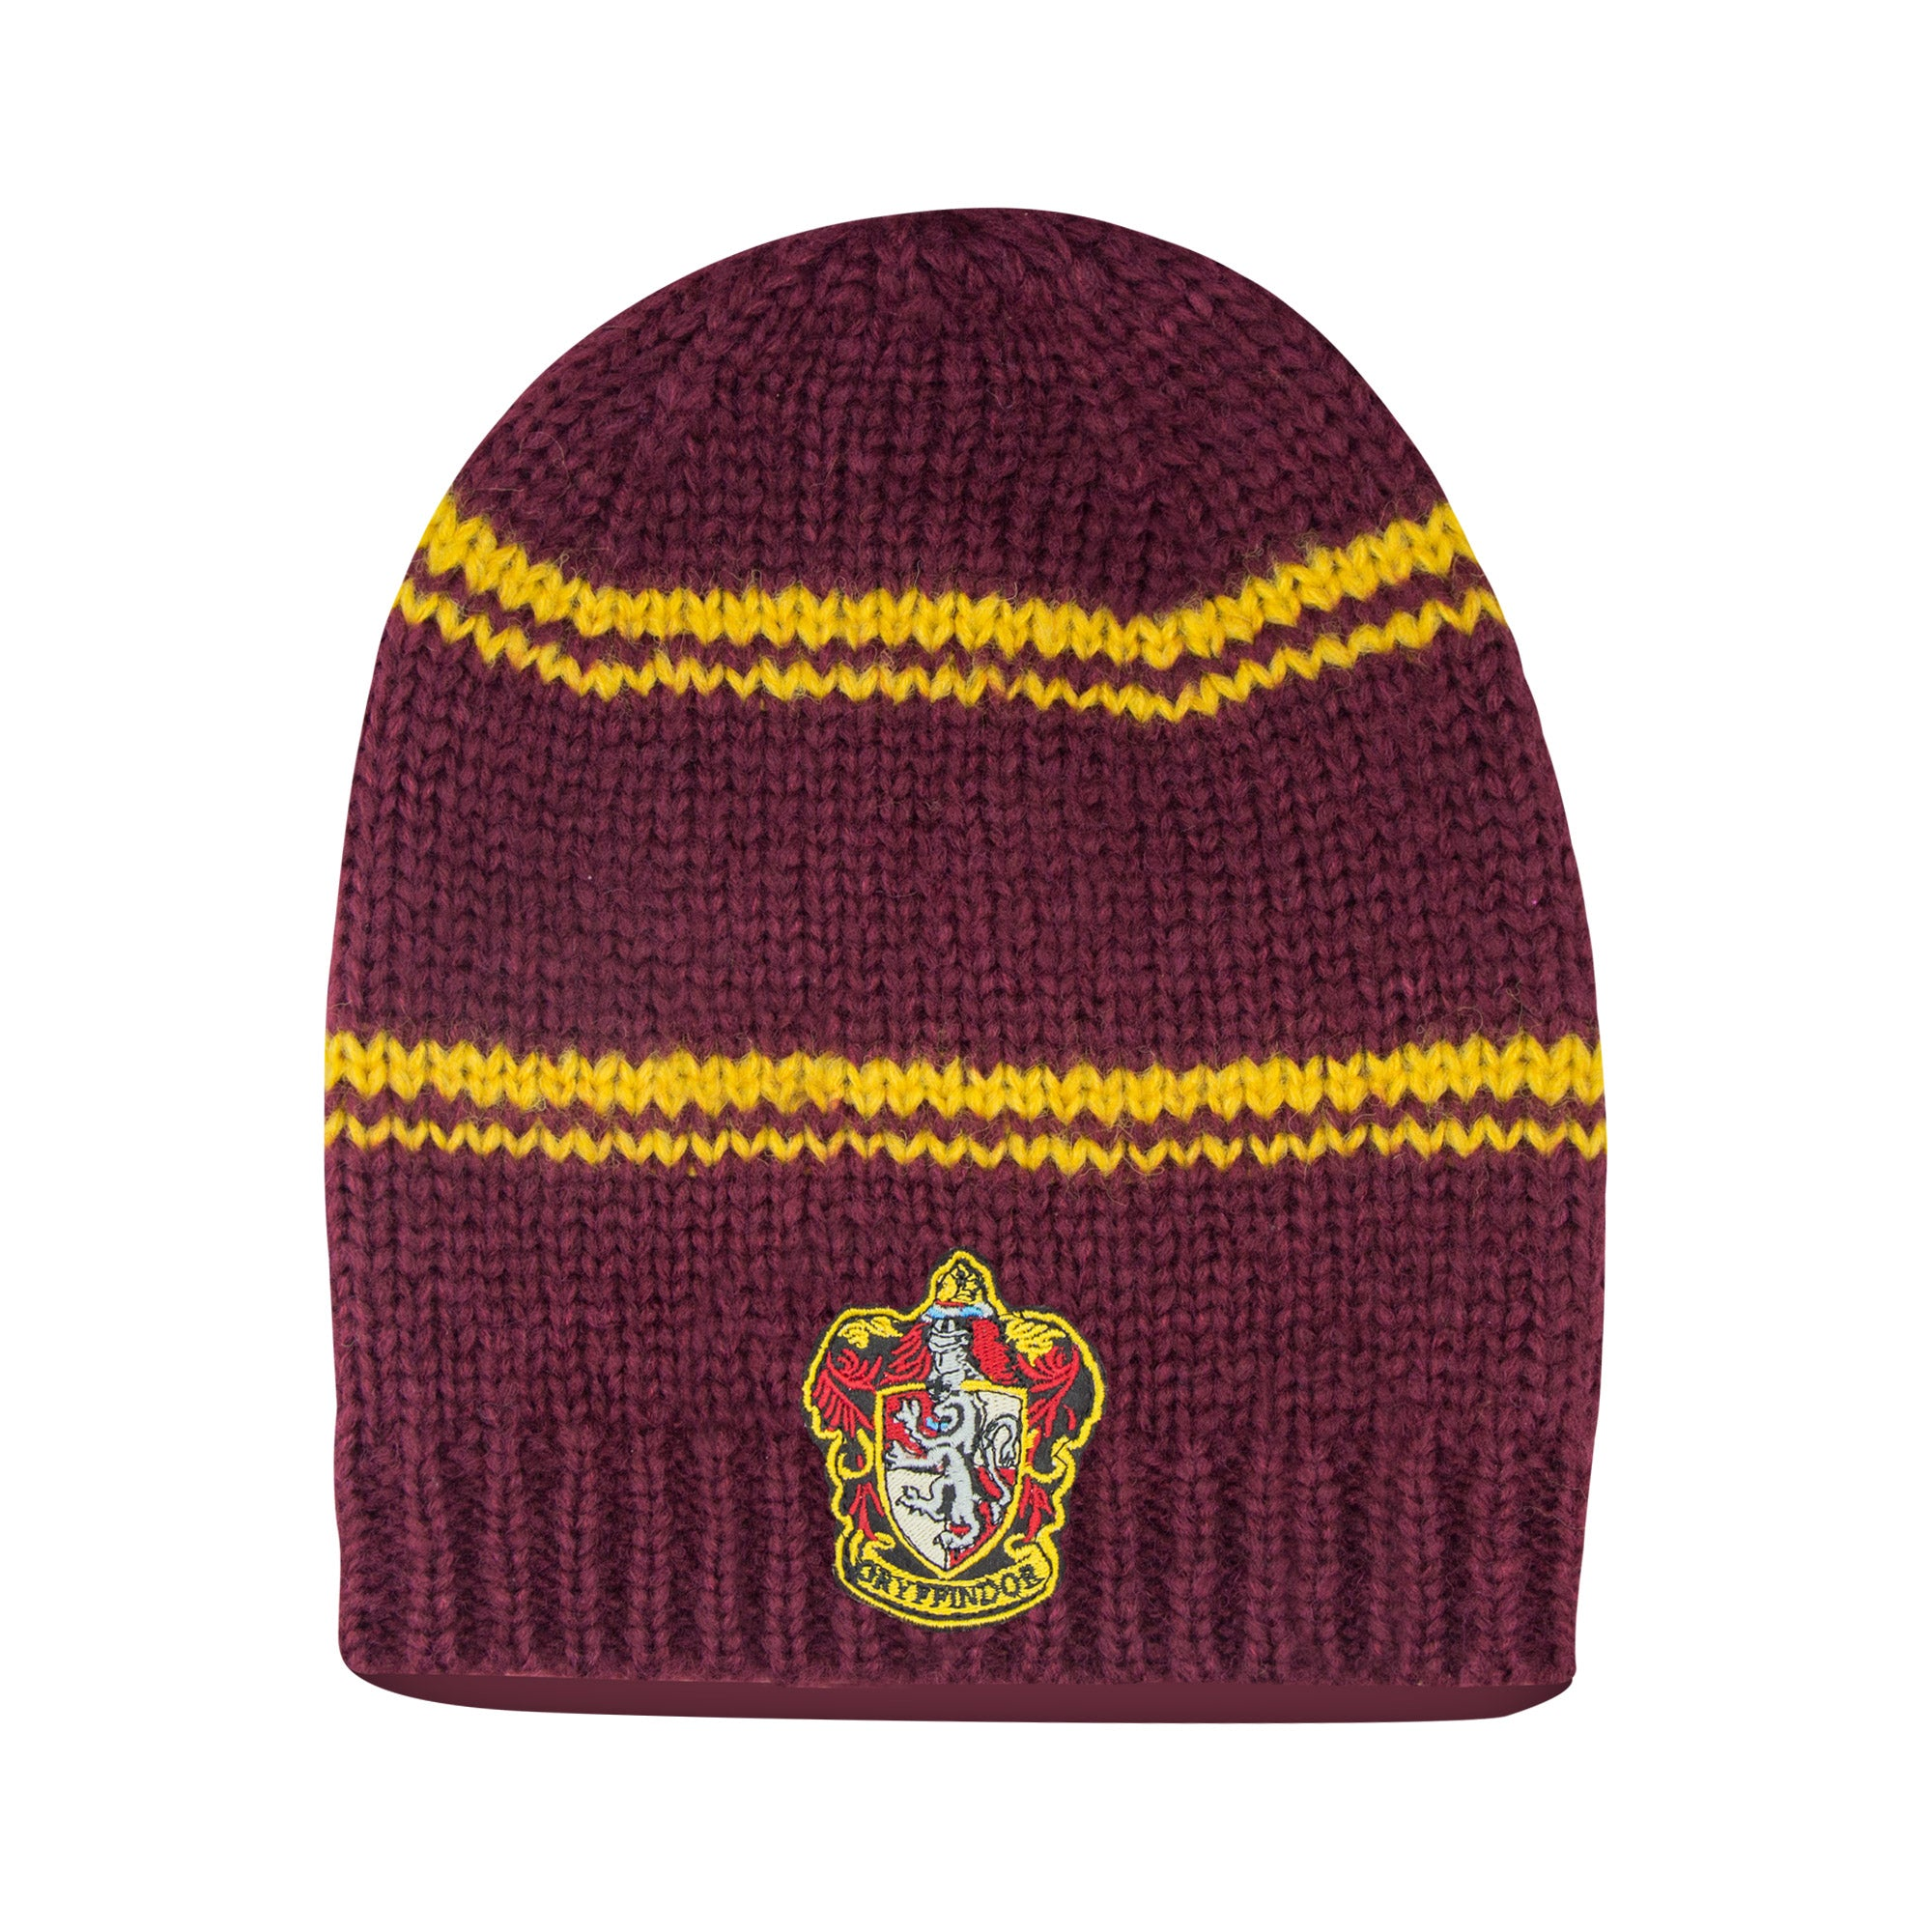 CNR - Gorro Harry Potter Gryffindor